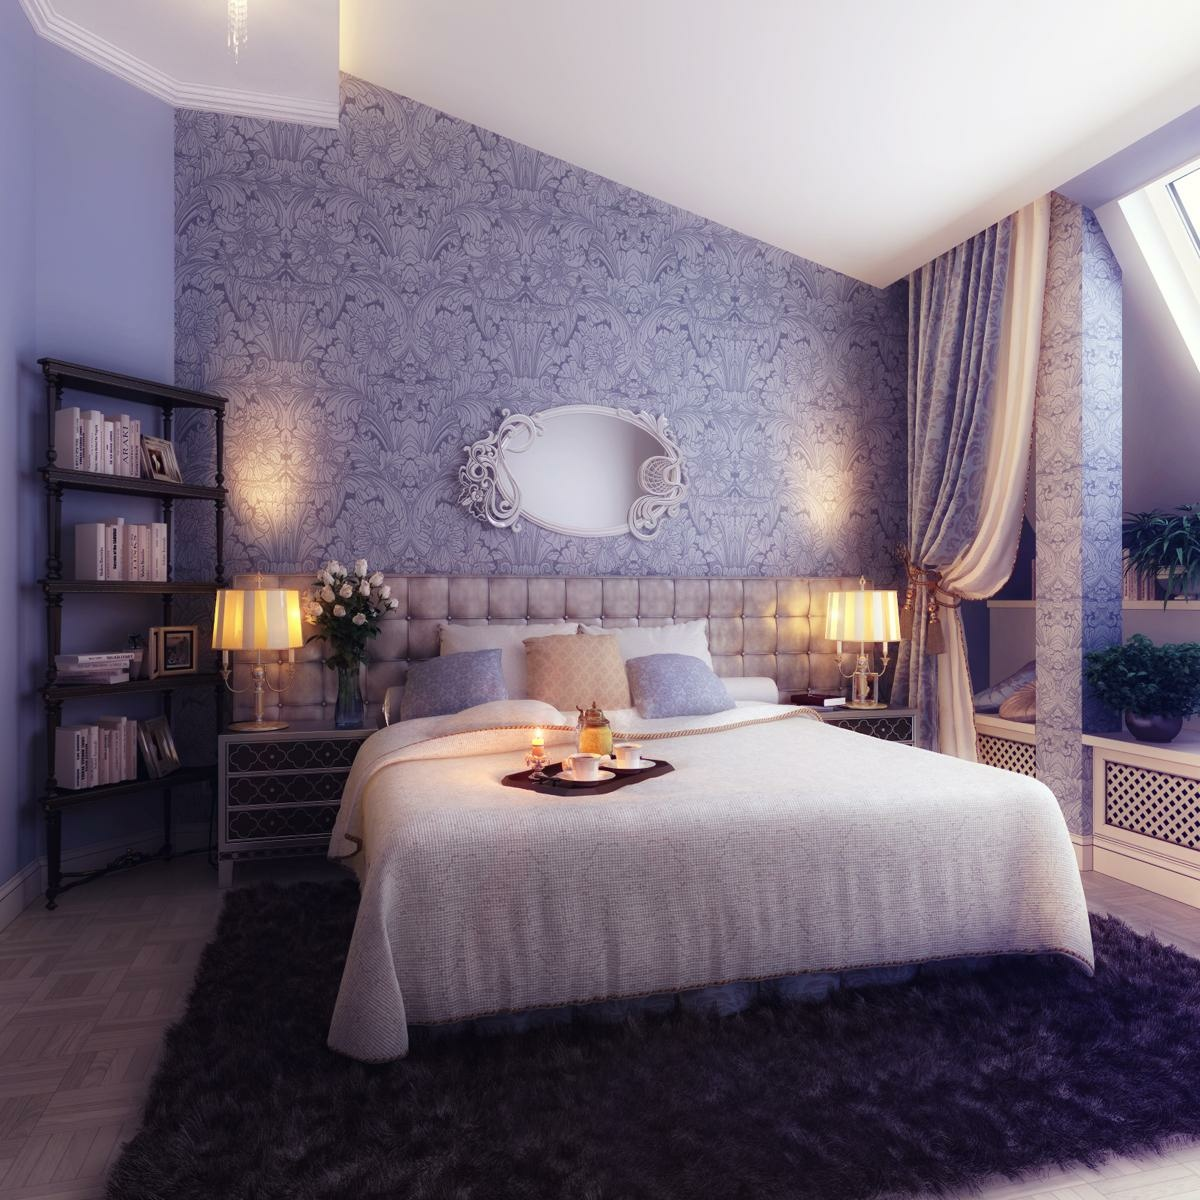 Bedrooms with traditional elegance Romantic bedrooms com